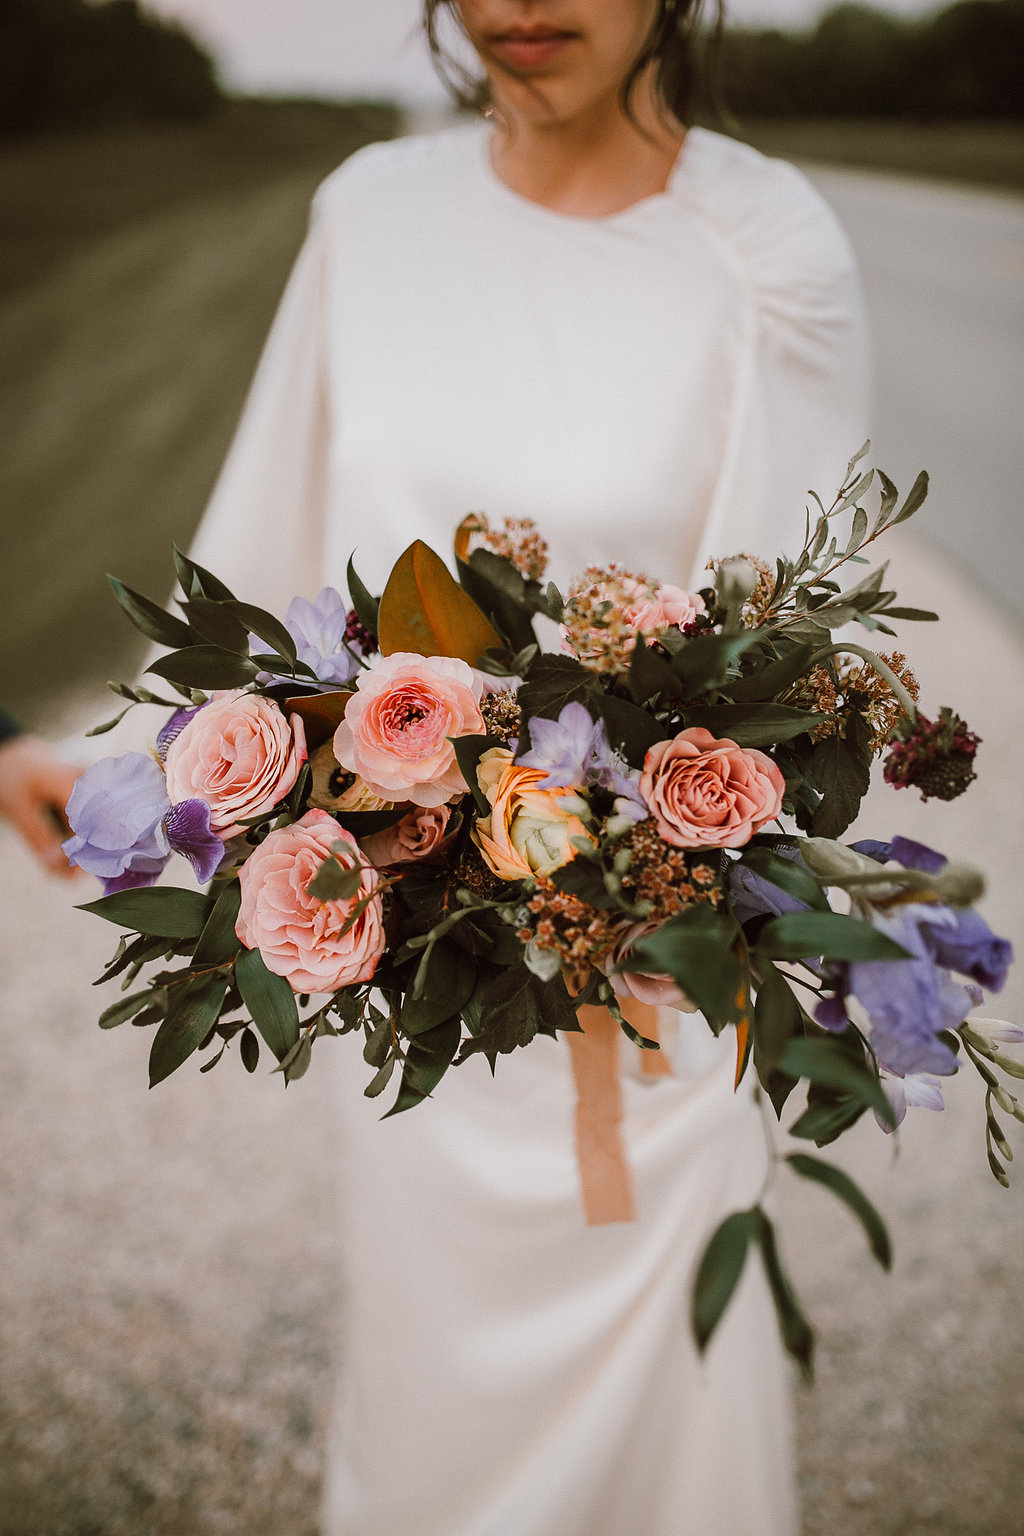 Mauve, Peach and Apricot Bridal Bouquet - Organic Wedding Flowers in Winnipeg